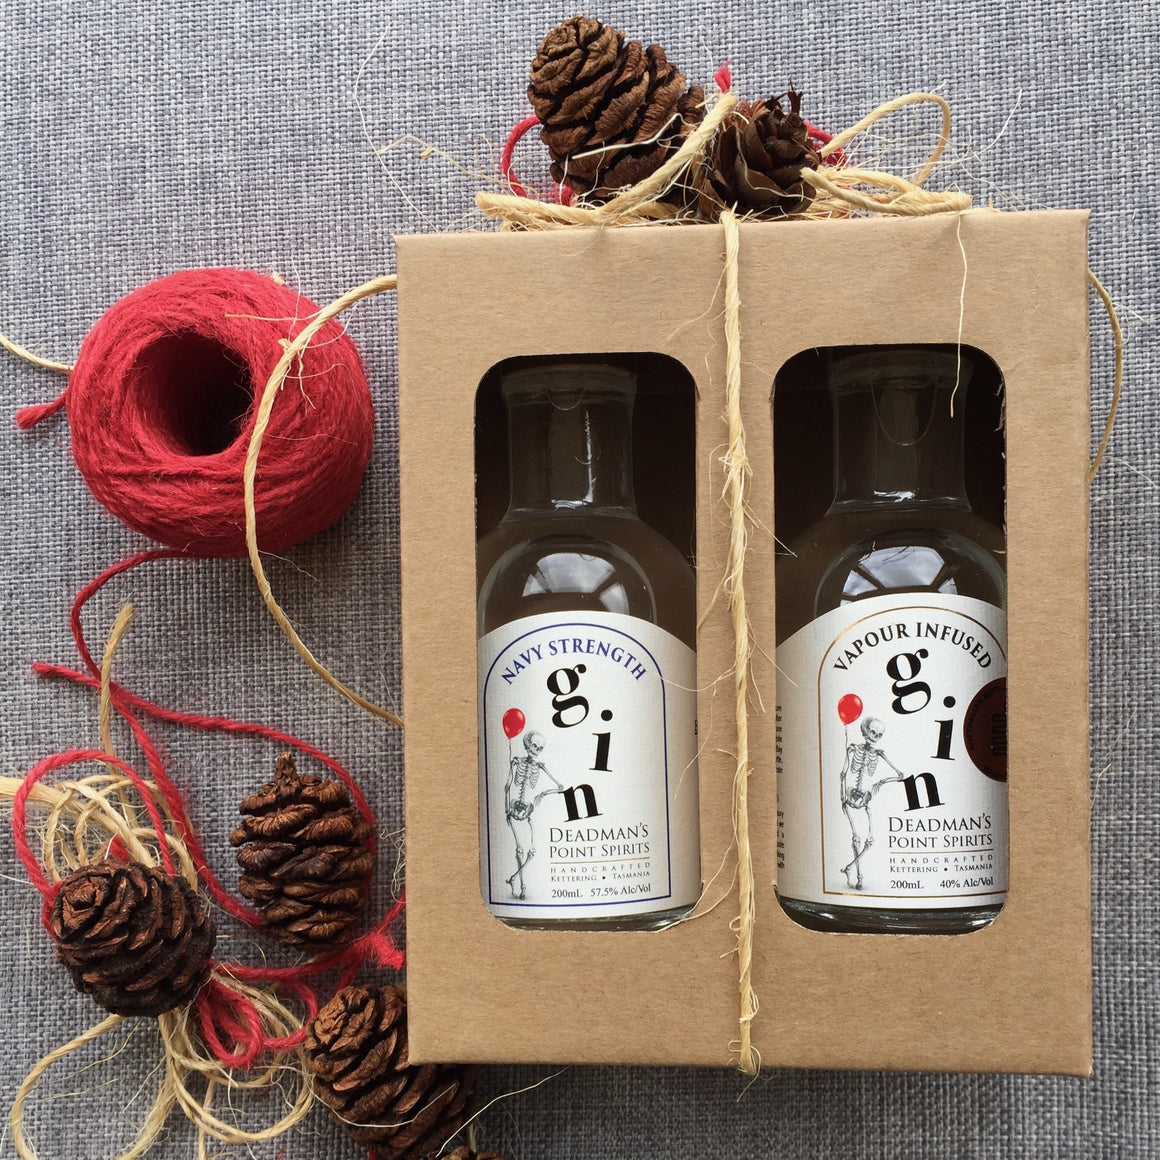 Christmas Navy Strength & Vapour Infused Gin Twin Pack